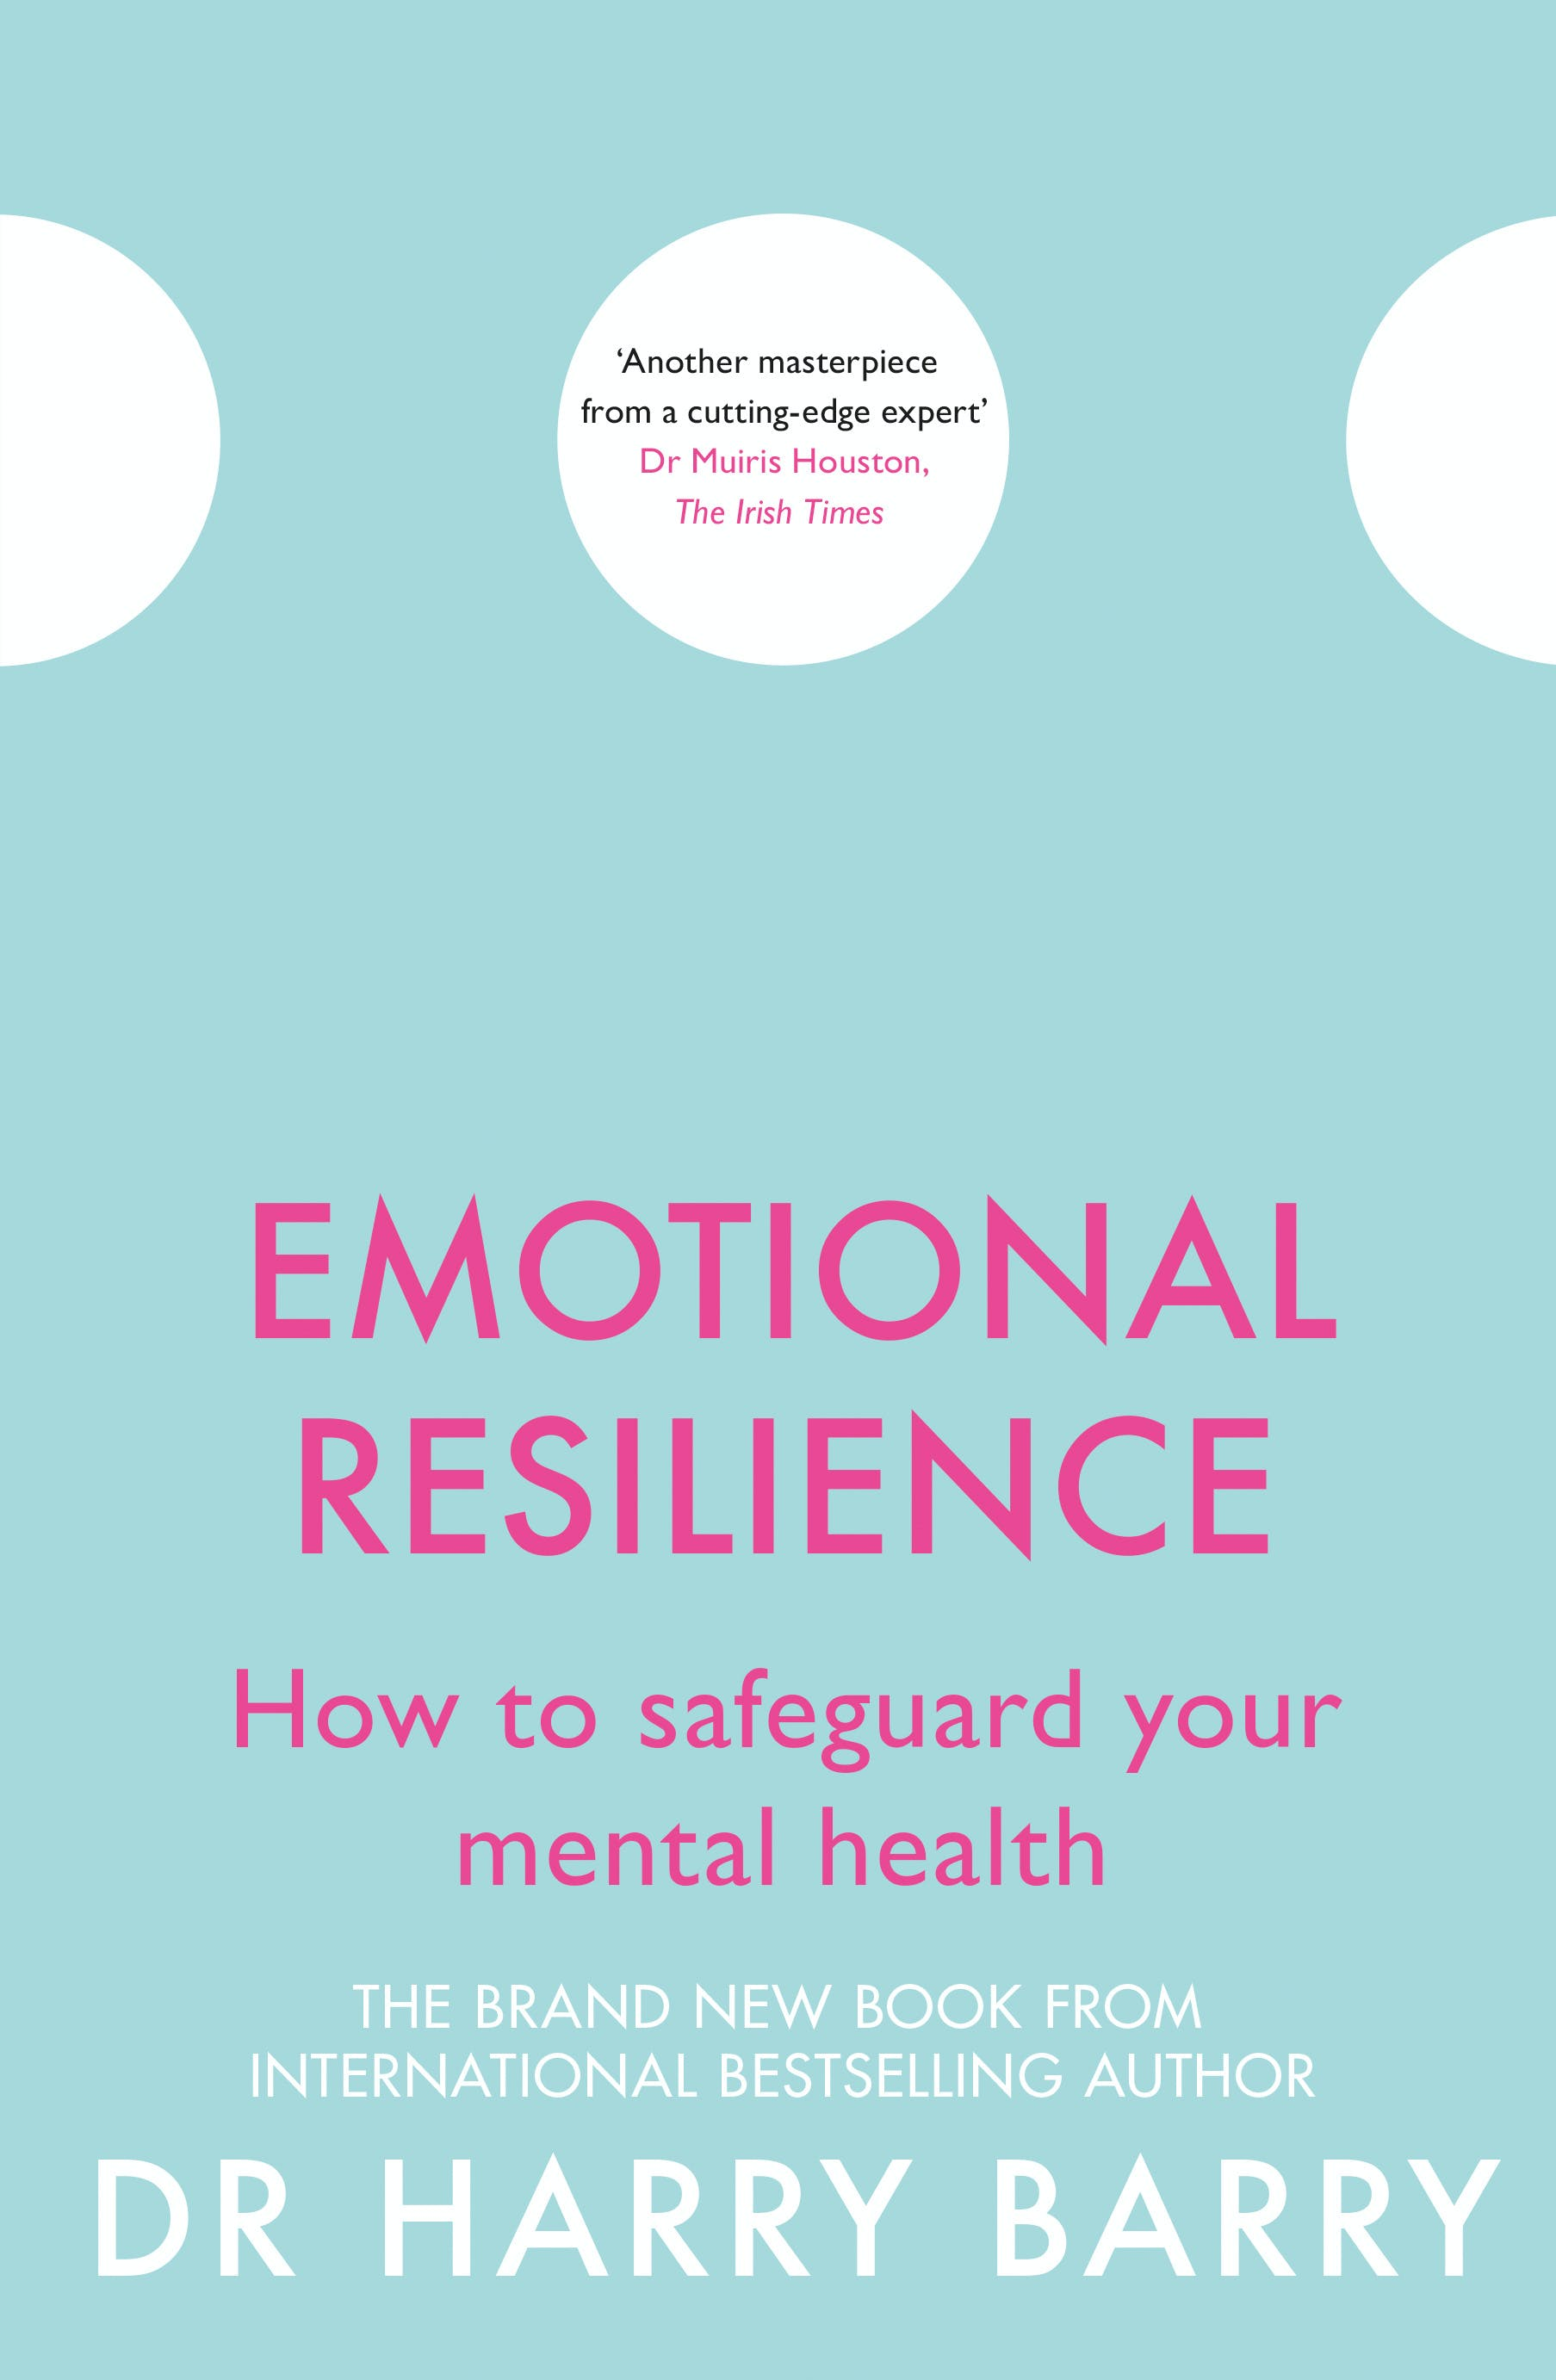 Emotional Resilience: How to safeguard your mental health by